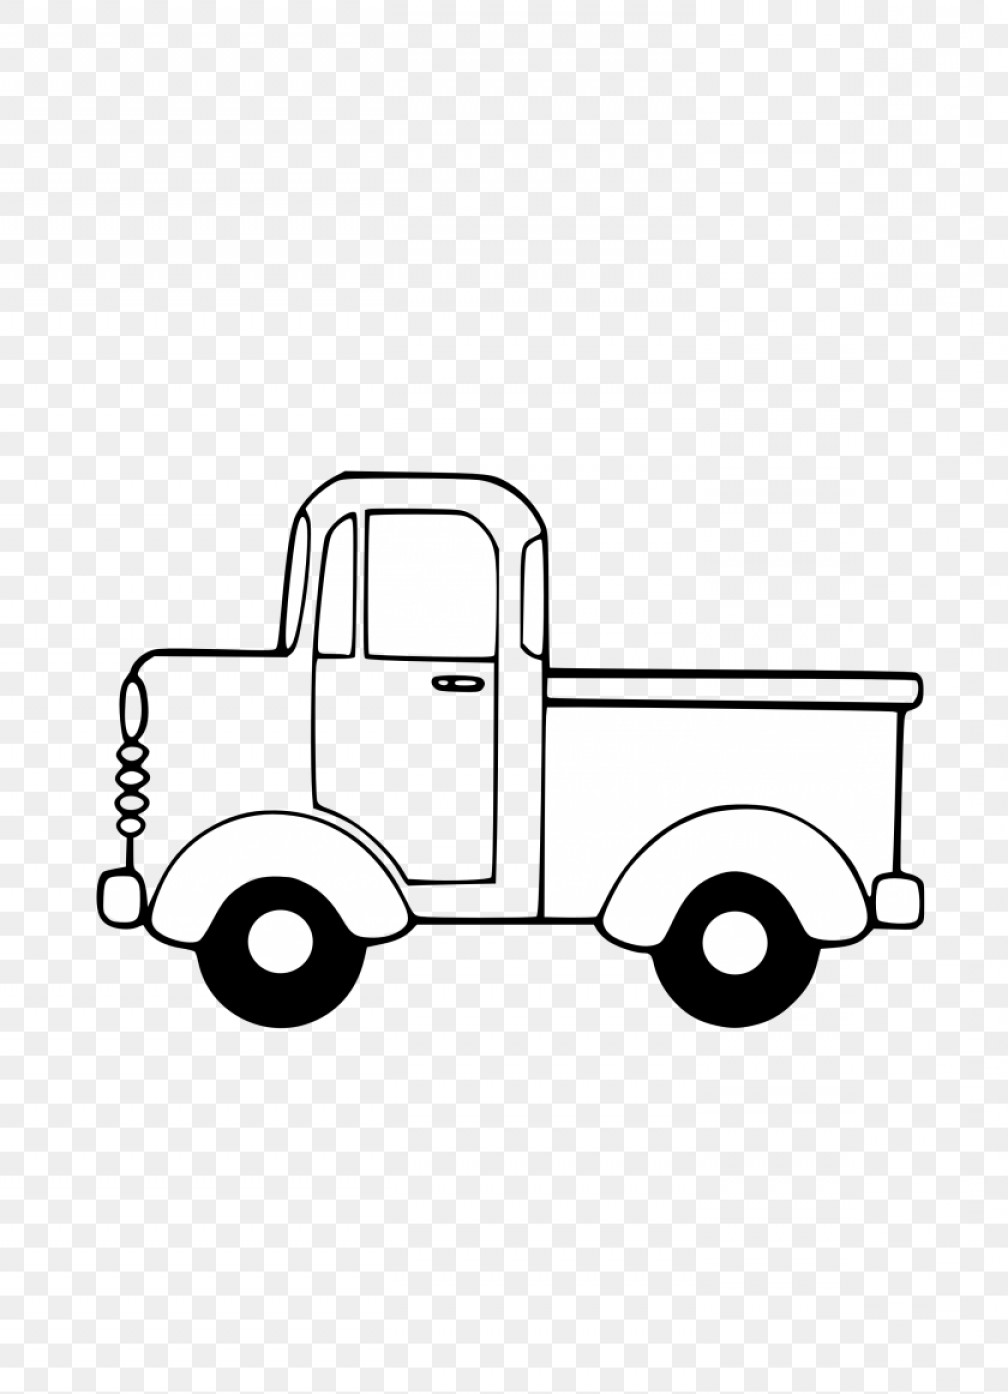 Towing Truck Hook Vector: Building Clip Art Vector Online Royalty Free Public Pictures Tow Hook Clipart